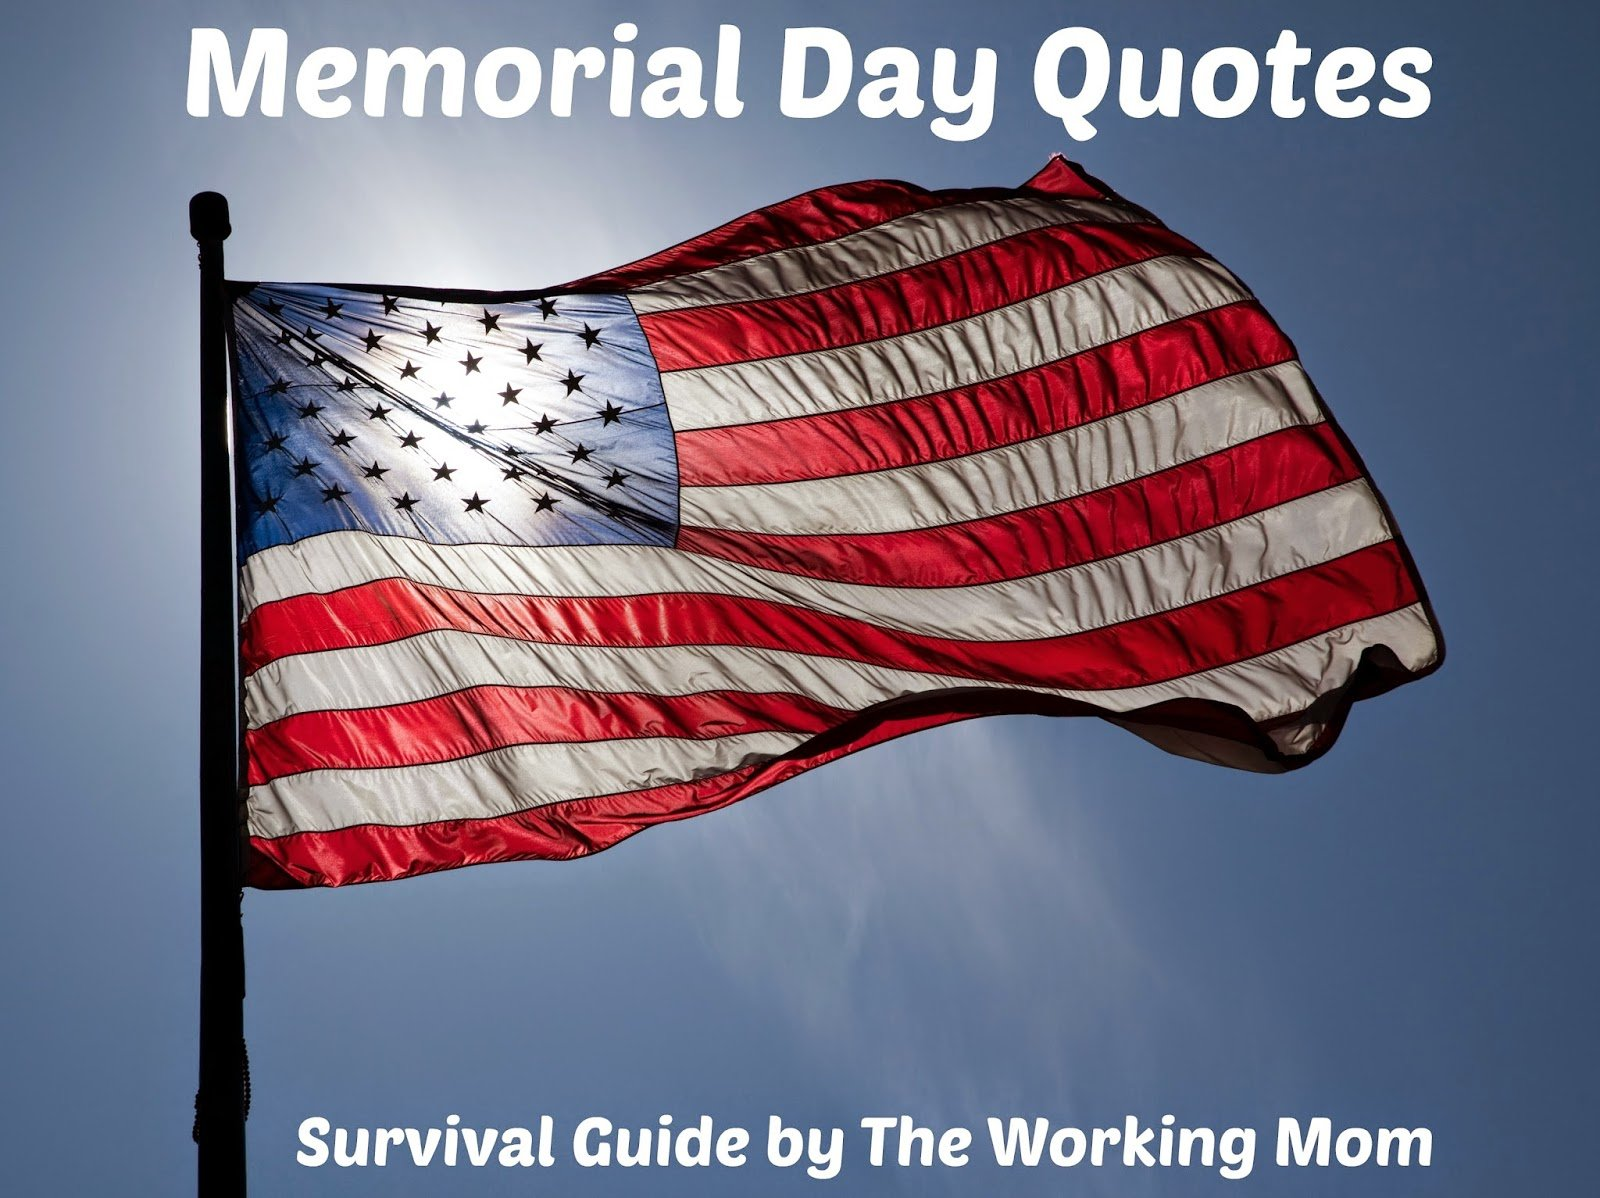 Memorial Day Quotes Memorial Day Quotes Inspirational Quotes Reminding Us